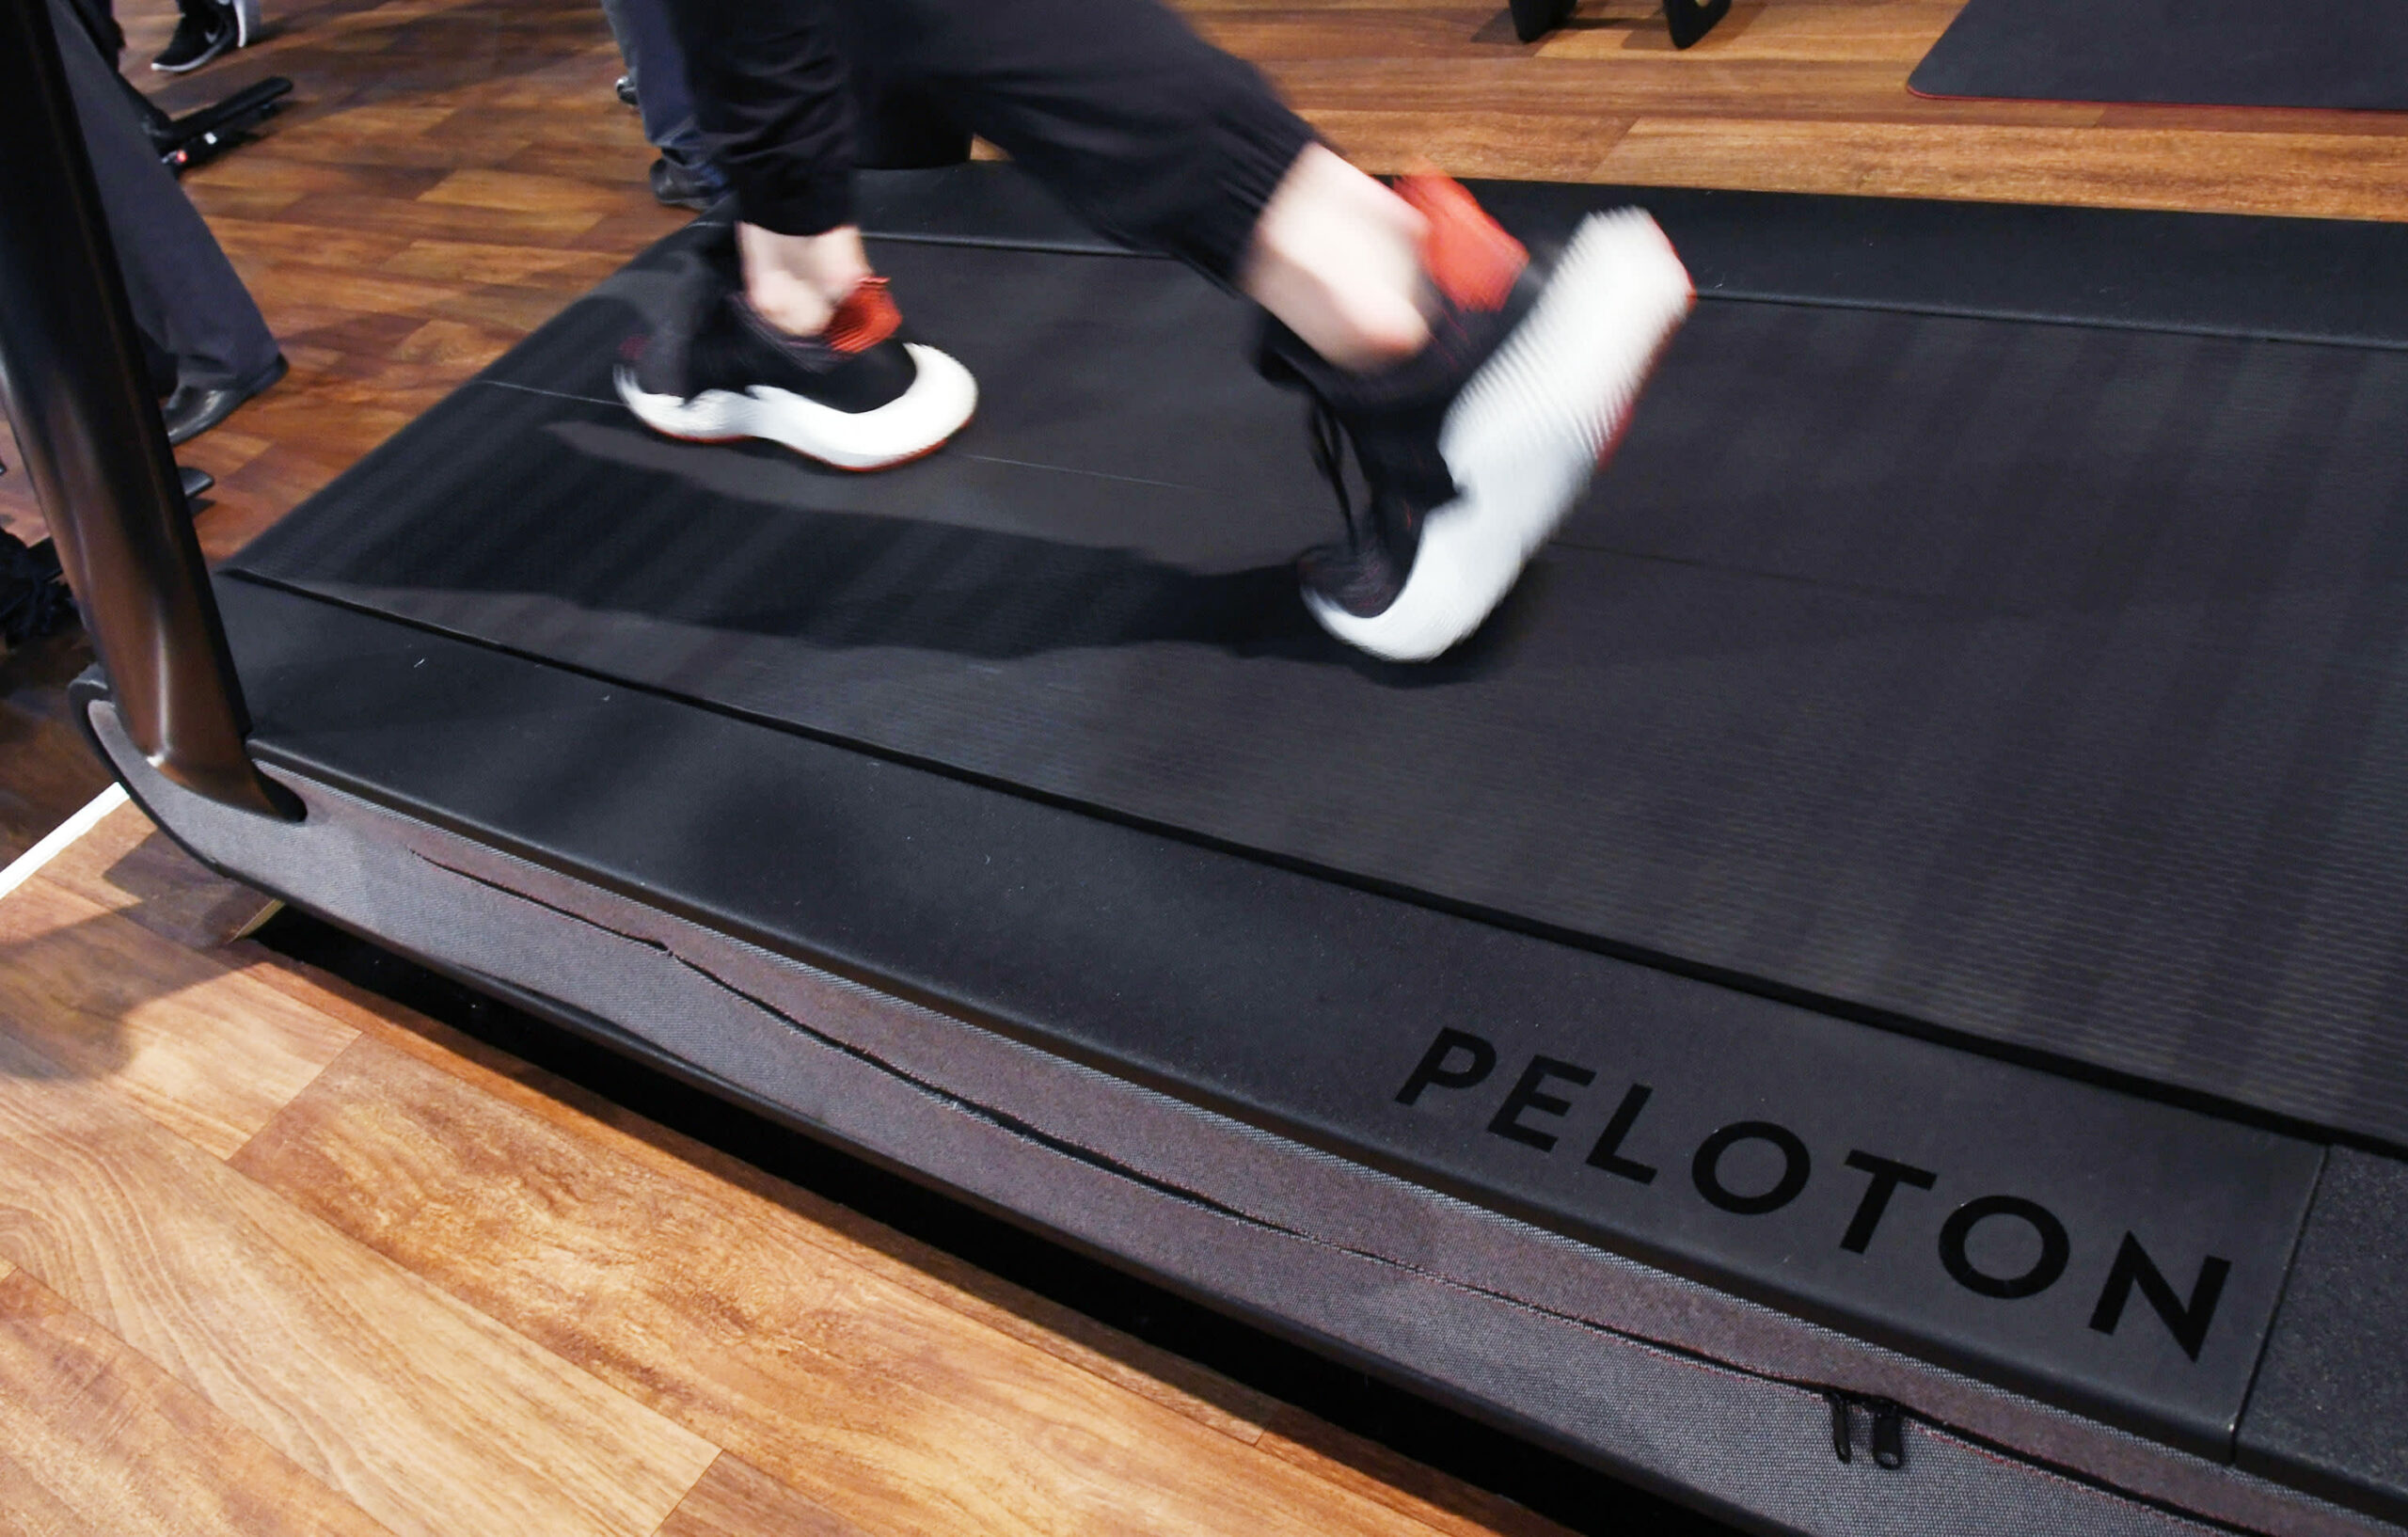 Peloton recalling all treadmills after stories of accidents, one demise